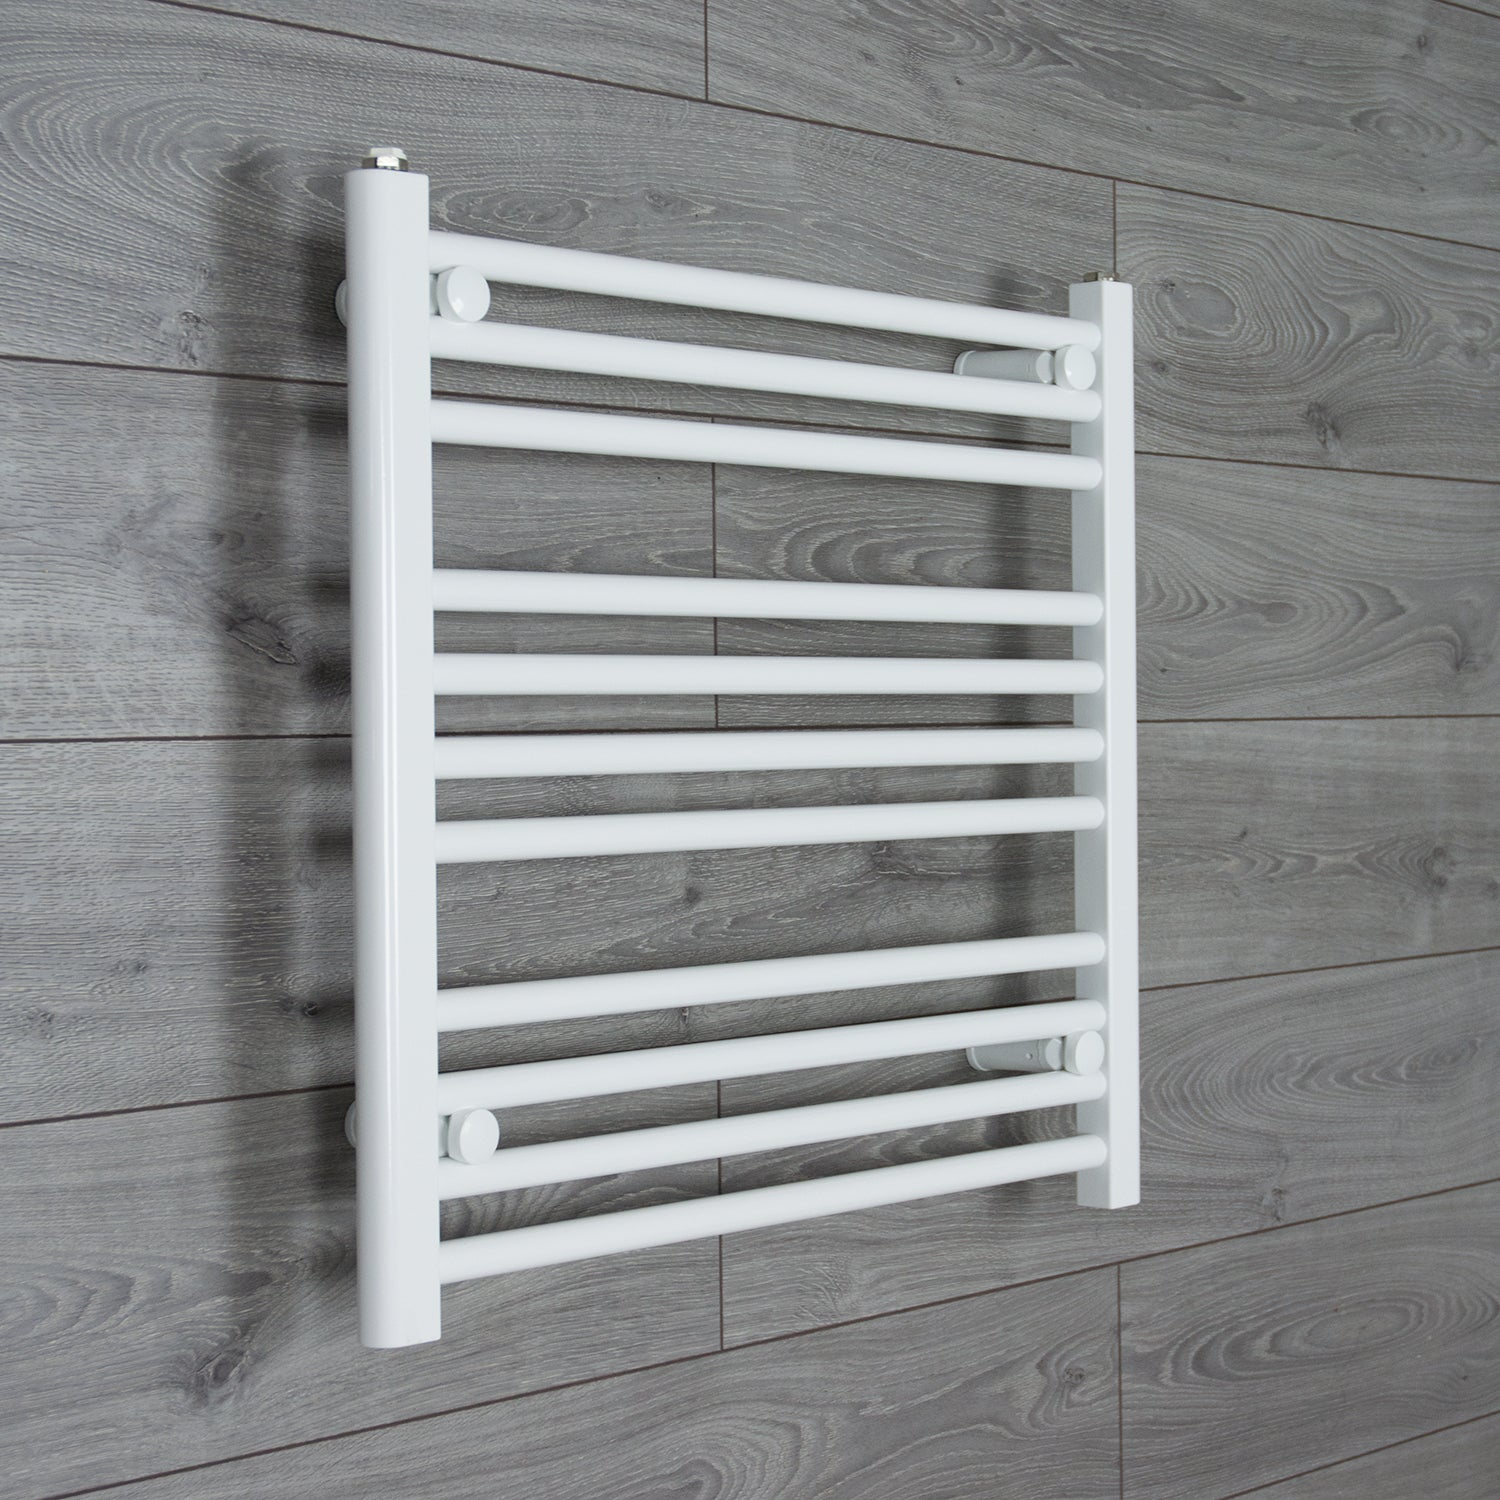 650x600mm Flat White Electric Element Towel Rail